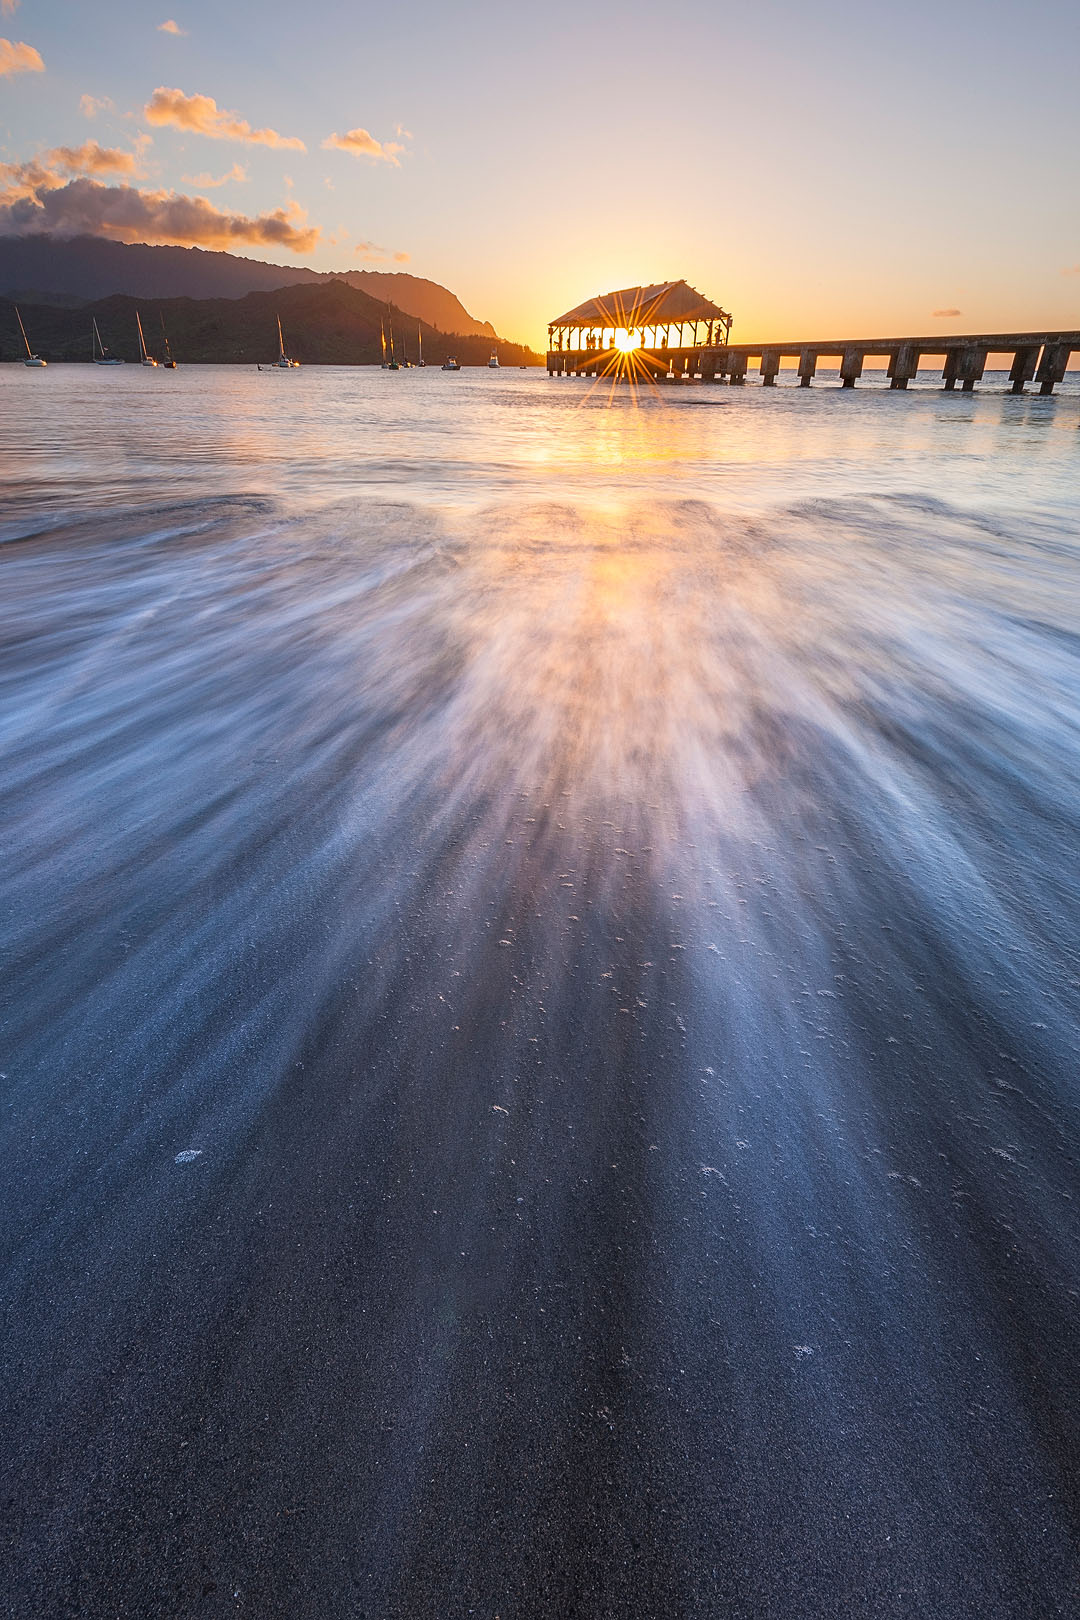 feinberg, vertical, hanalei, pier, kauai, hawaii, sunset, photo